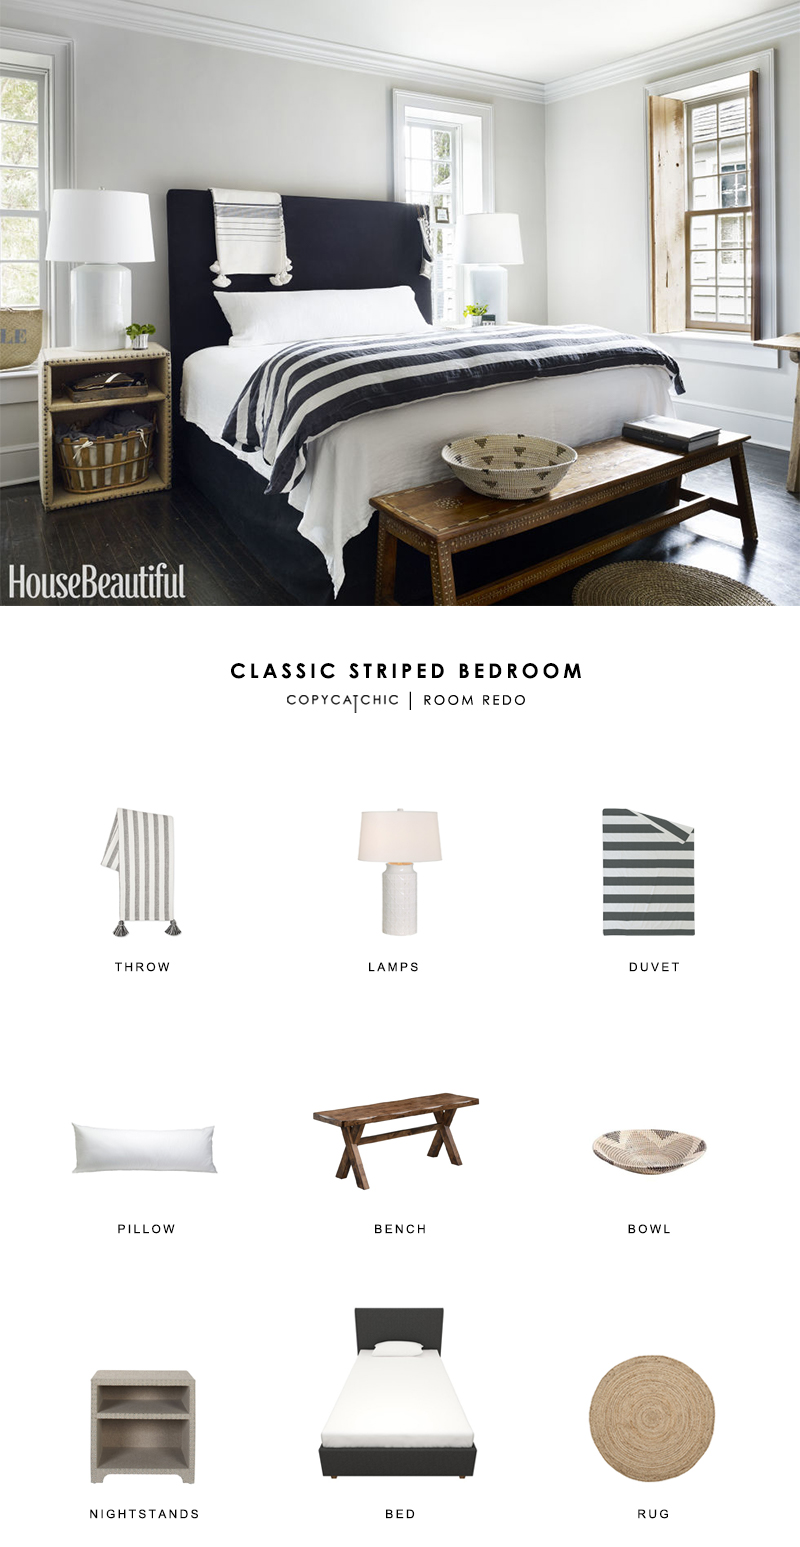 Tonal black and white master bedroom by Jill Sharp Weeks gets recreated on a budget for less than $1500 copycatchic room redo luxe living for less budget